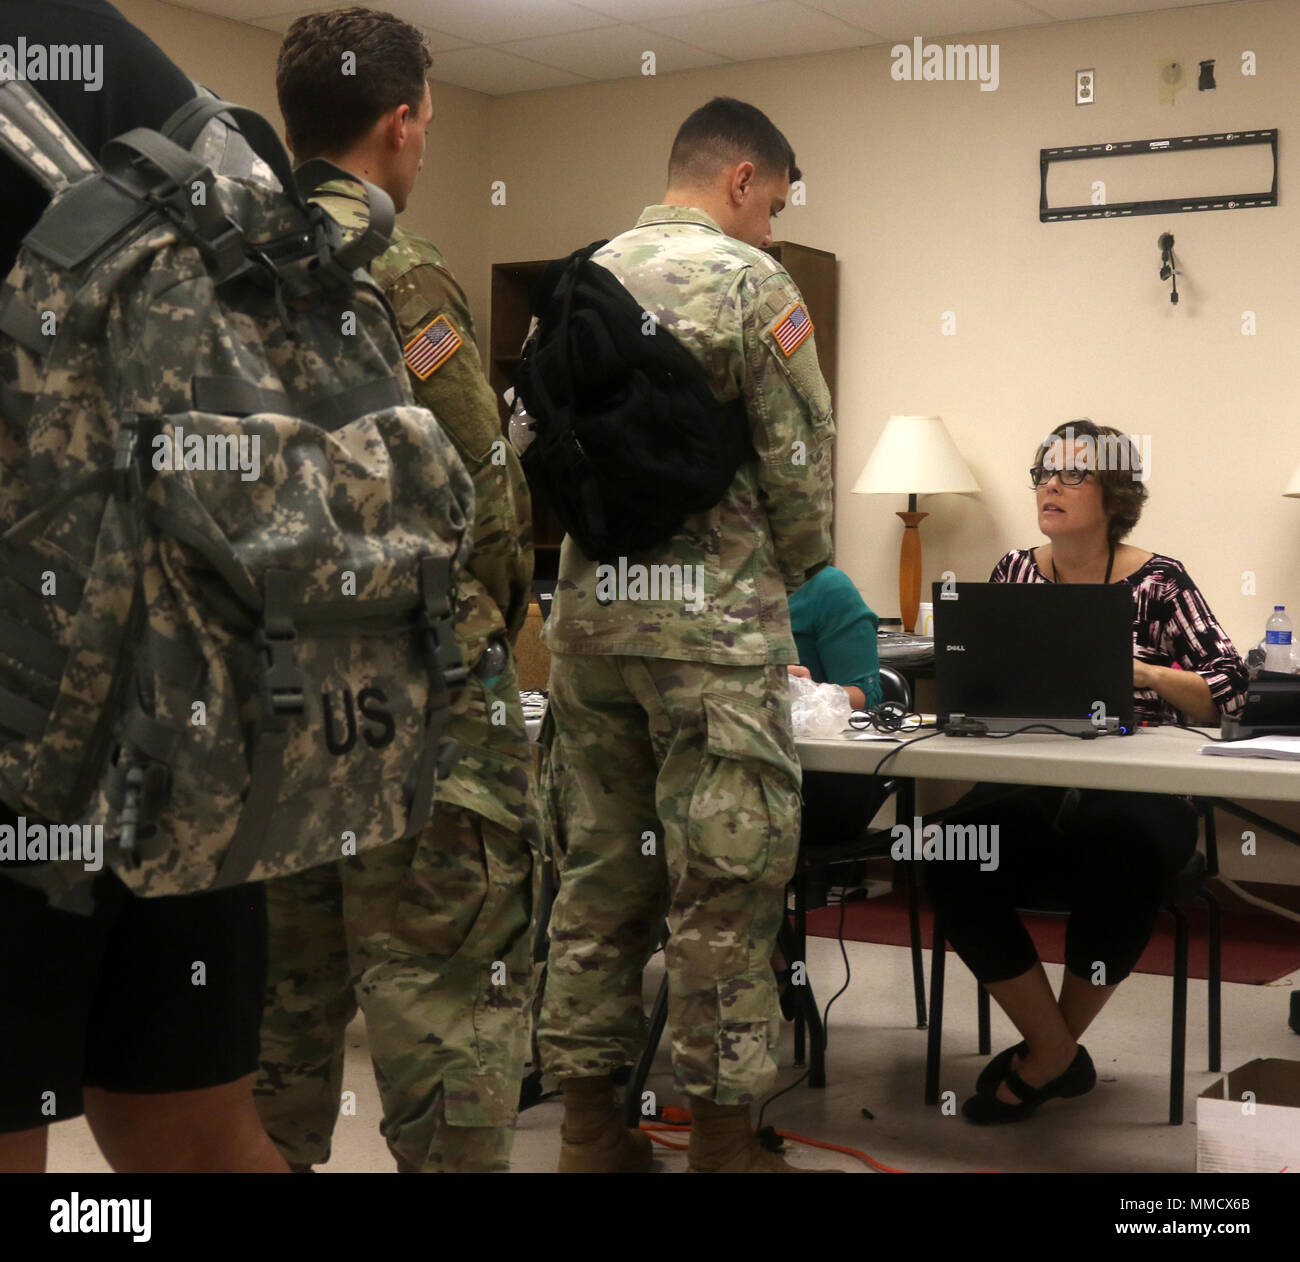 Soldiers of the Mississippi Army National Guard stand in line to start their Periodic Health Assessment October 15, 2017, at Camp Shelby, Mississippi. The PHA is an annual assessment that has to be completed by each Soldier that addresses unresolved health concerns and then either creates a treatment plan or treats the issue on the spot to maintain readiness. (Mississippi National Guard photo by Pfc. Jarvis Mace, 102d Public Affairs Detachment) - Stock Image